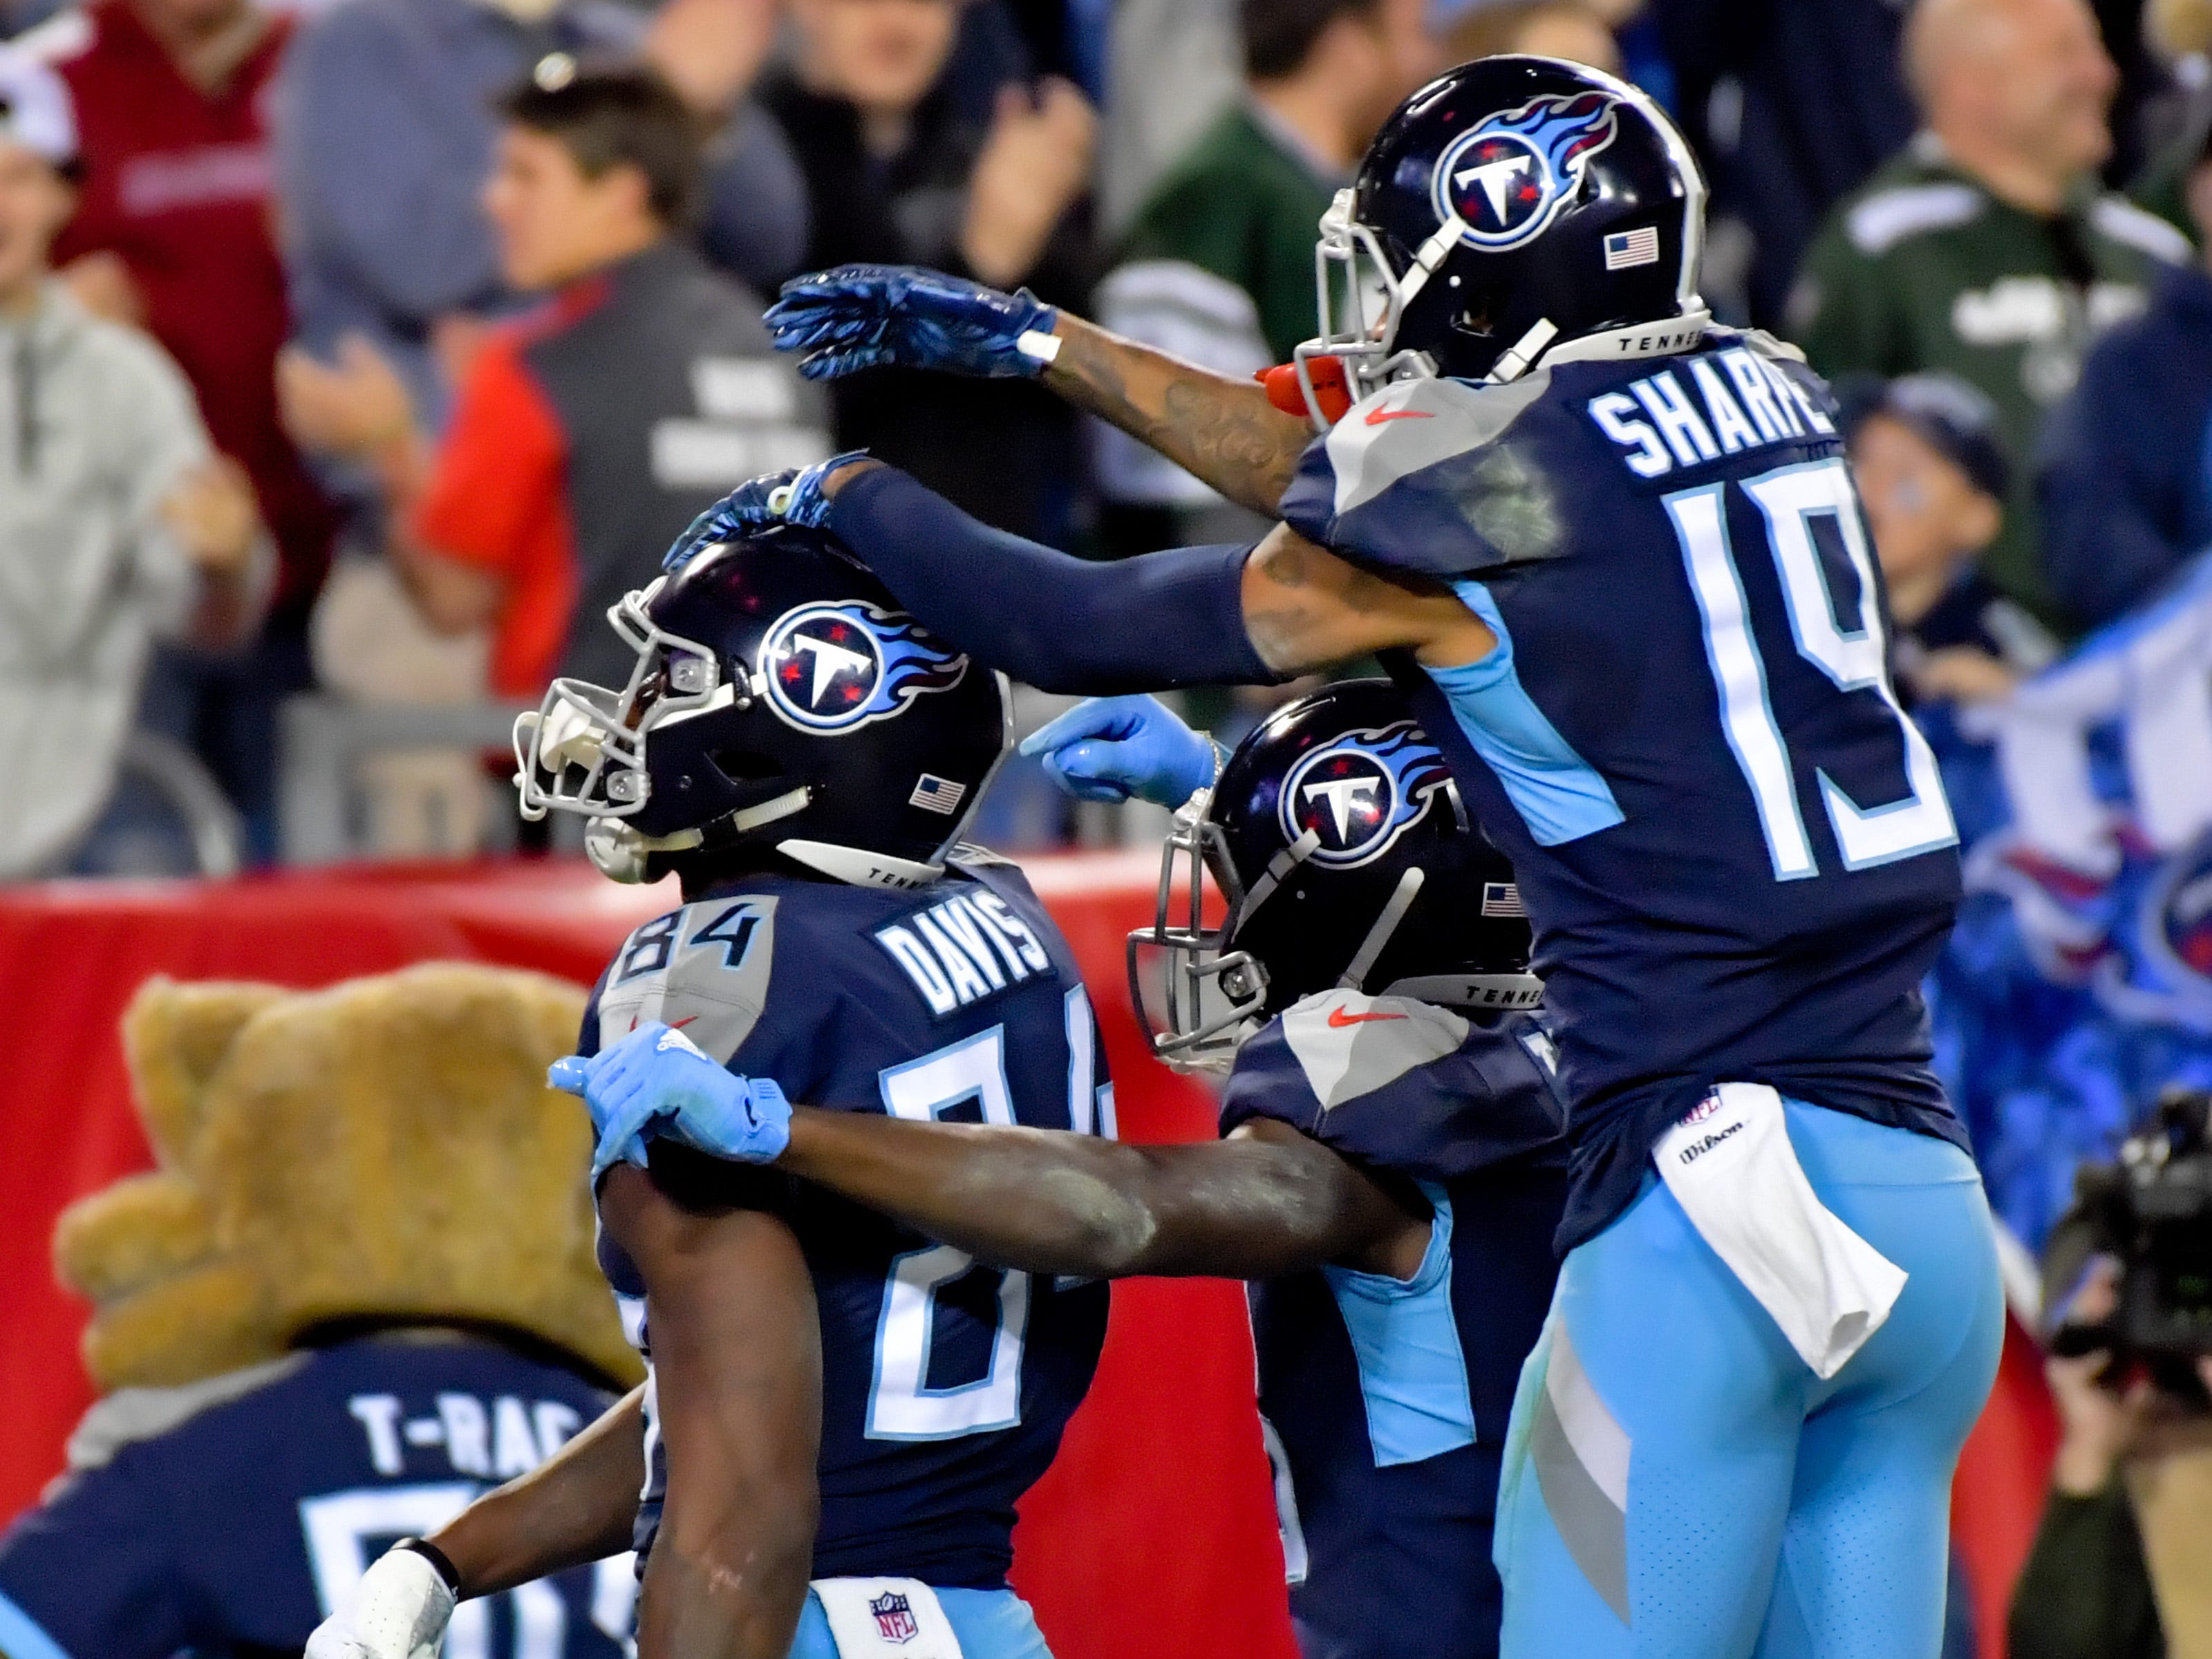 18. Titans (17): As low as their profile is, they're also lurking. They have four winnable games left. Offense woke up to hang season-best 461 yards on Jets.